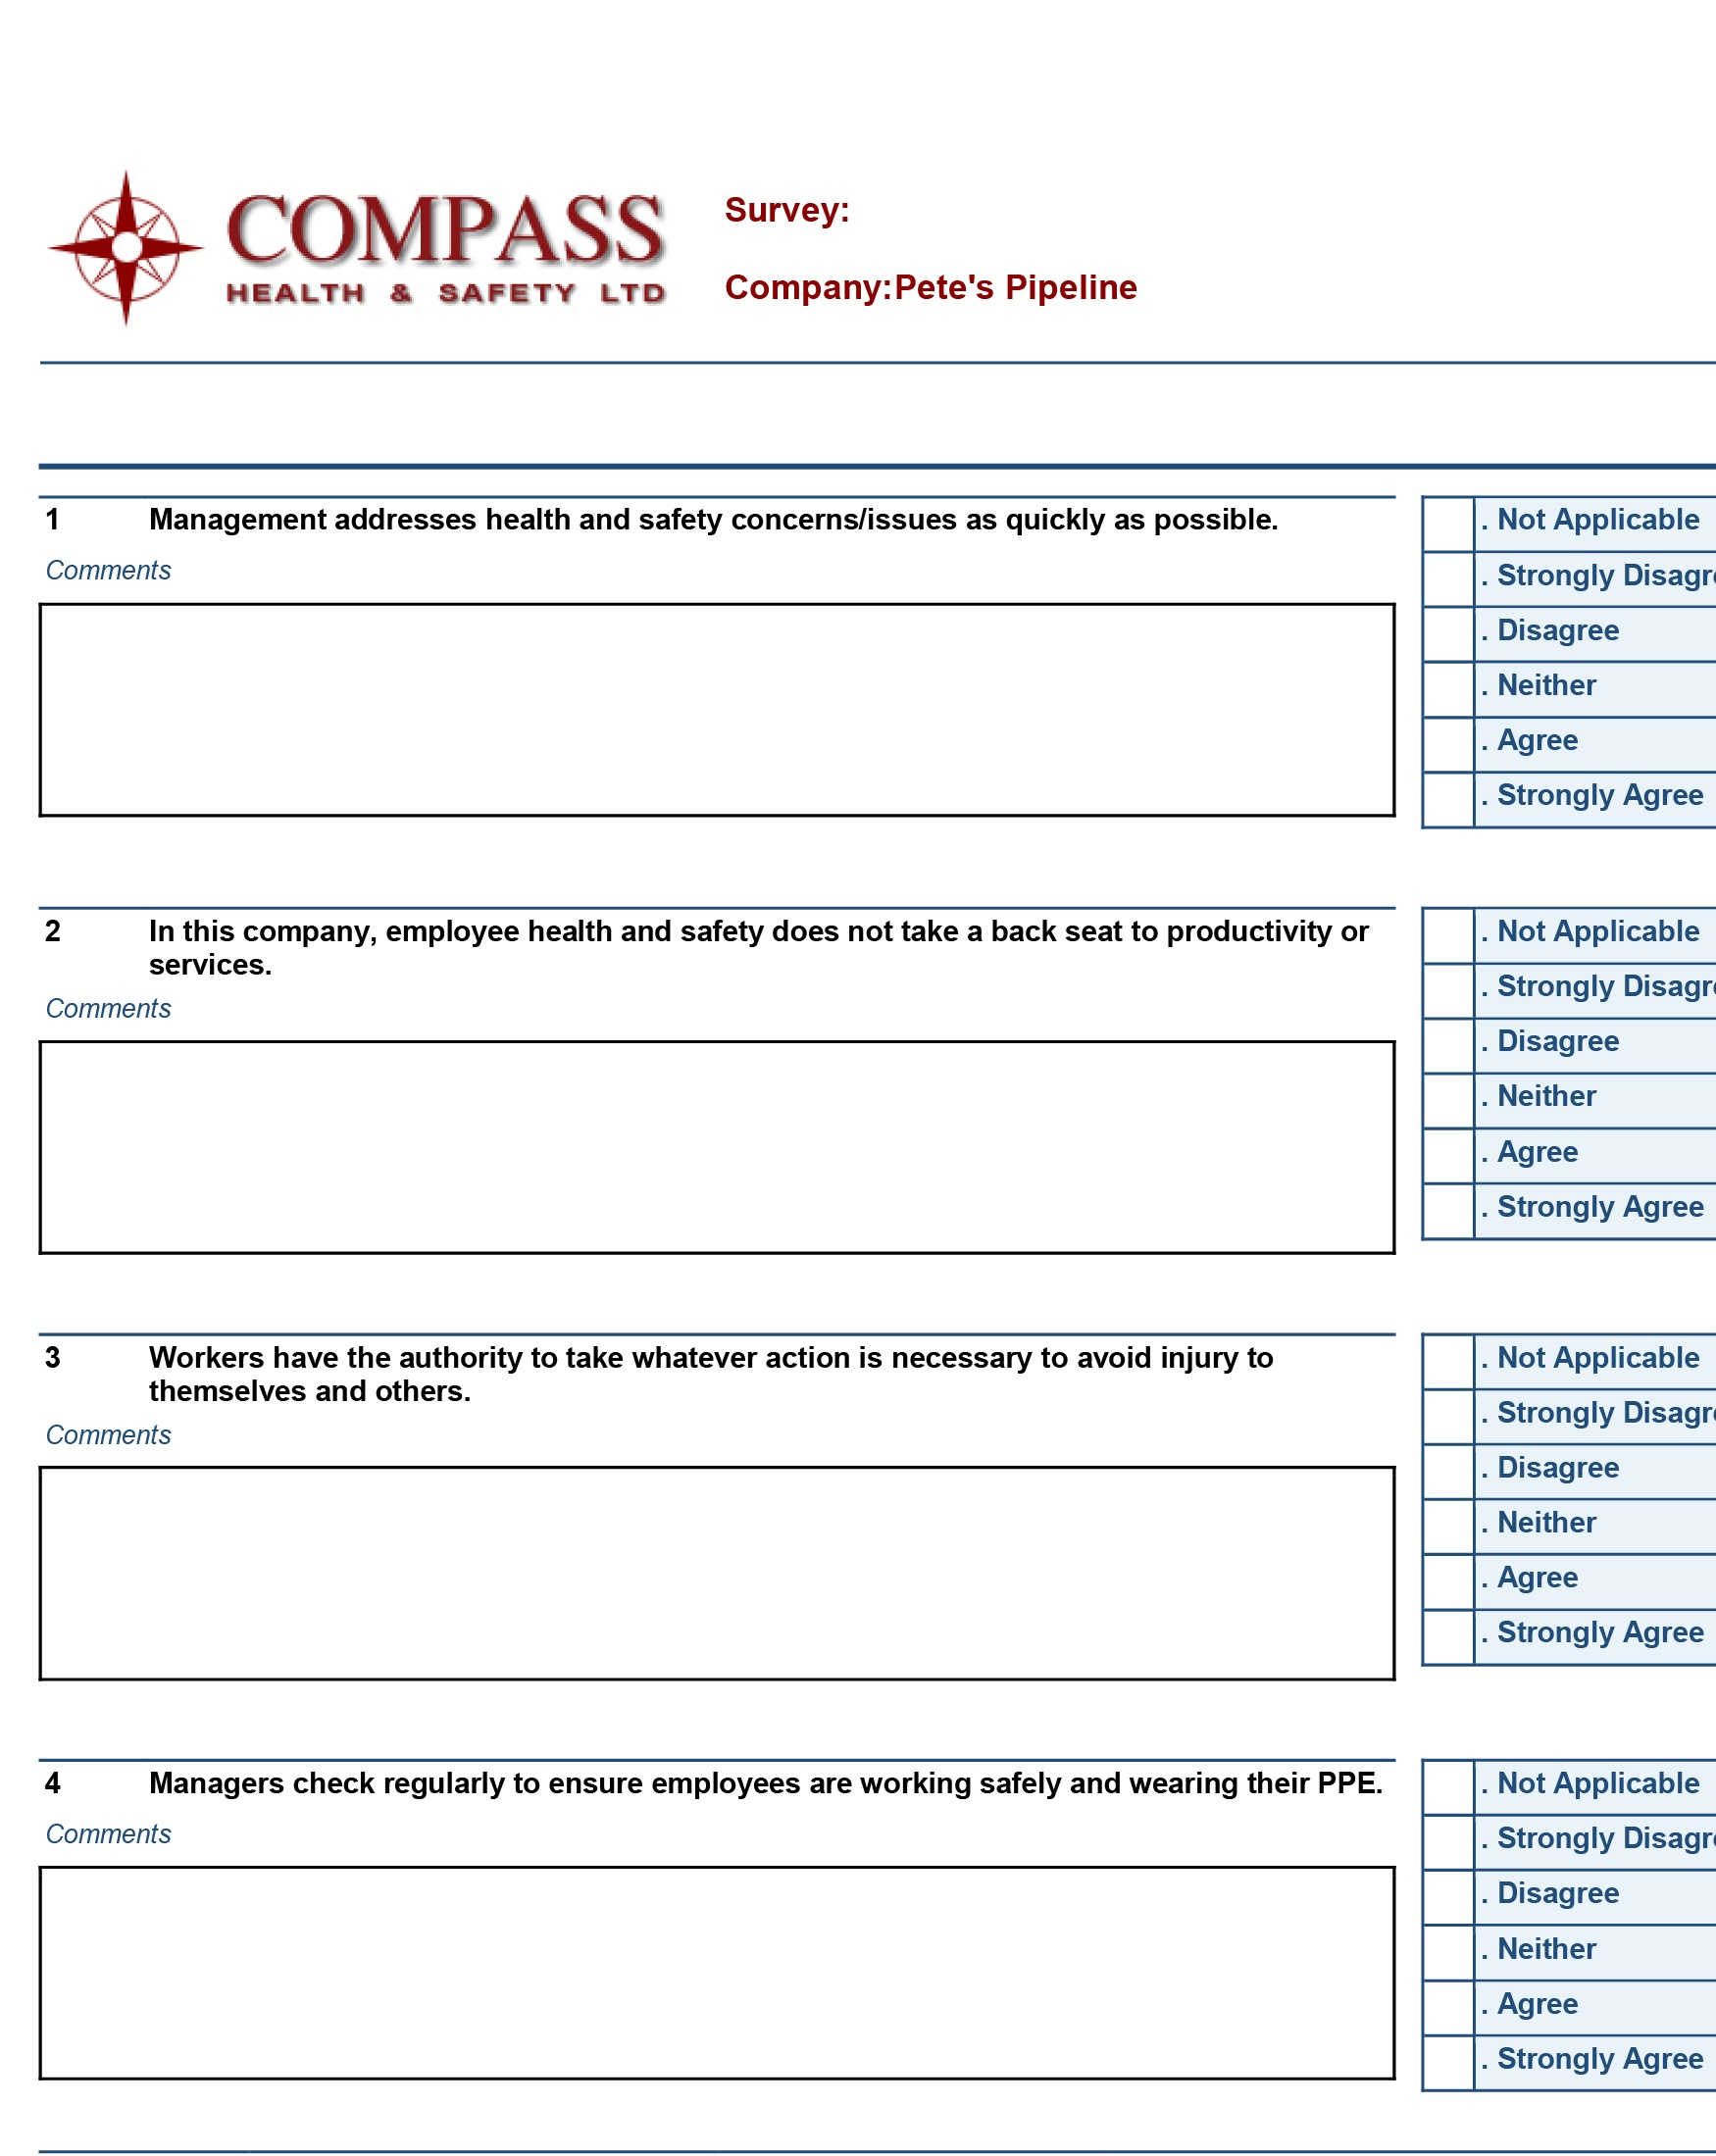 Compass Safety Perception Survey example